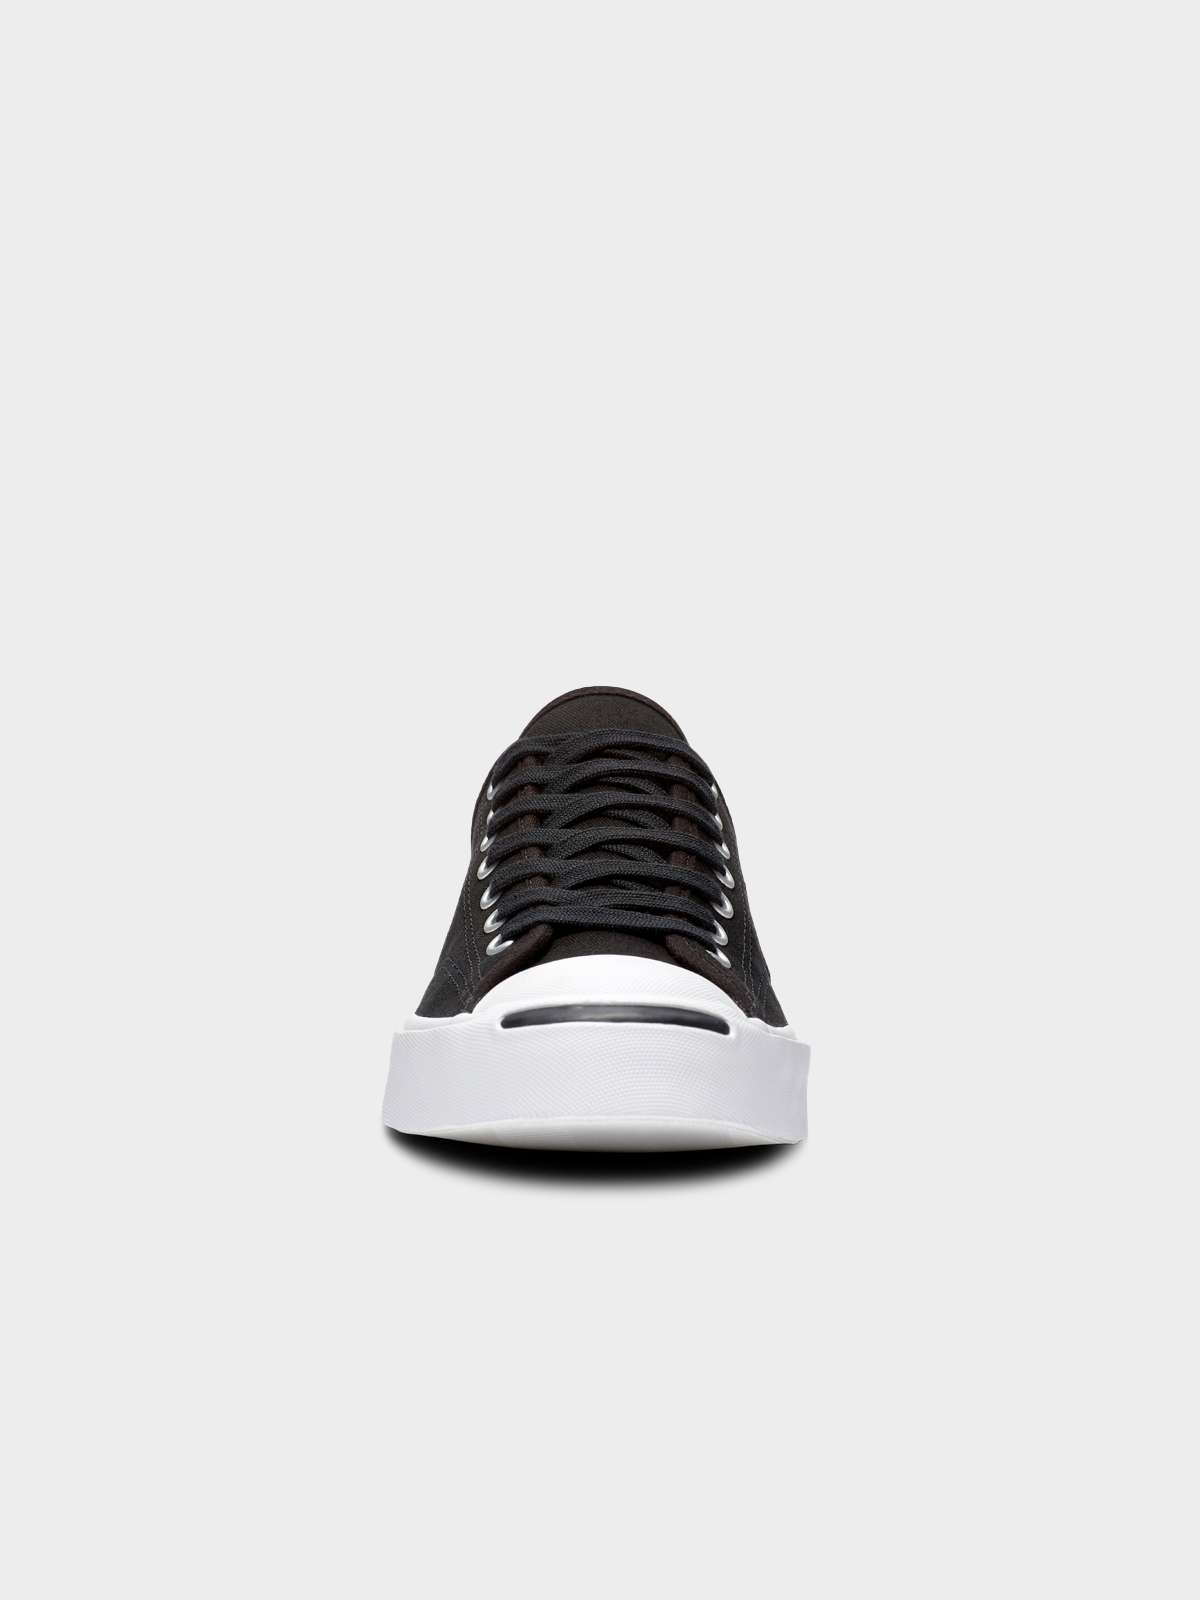 Converse Jack Purcell Ox Sneakers Black